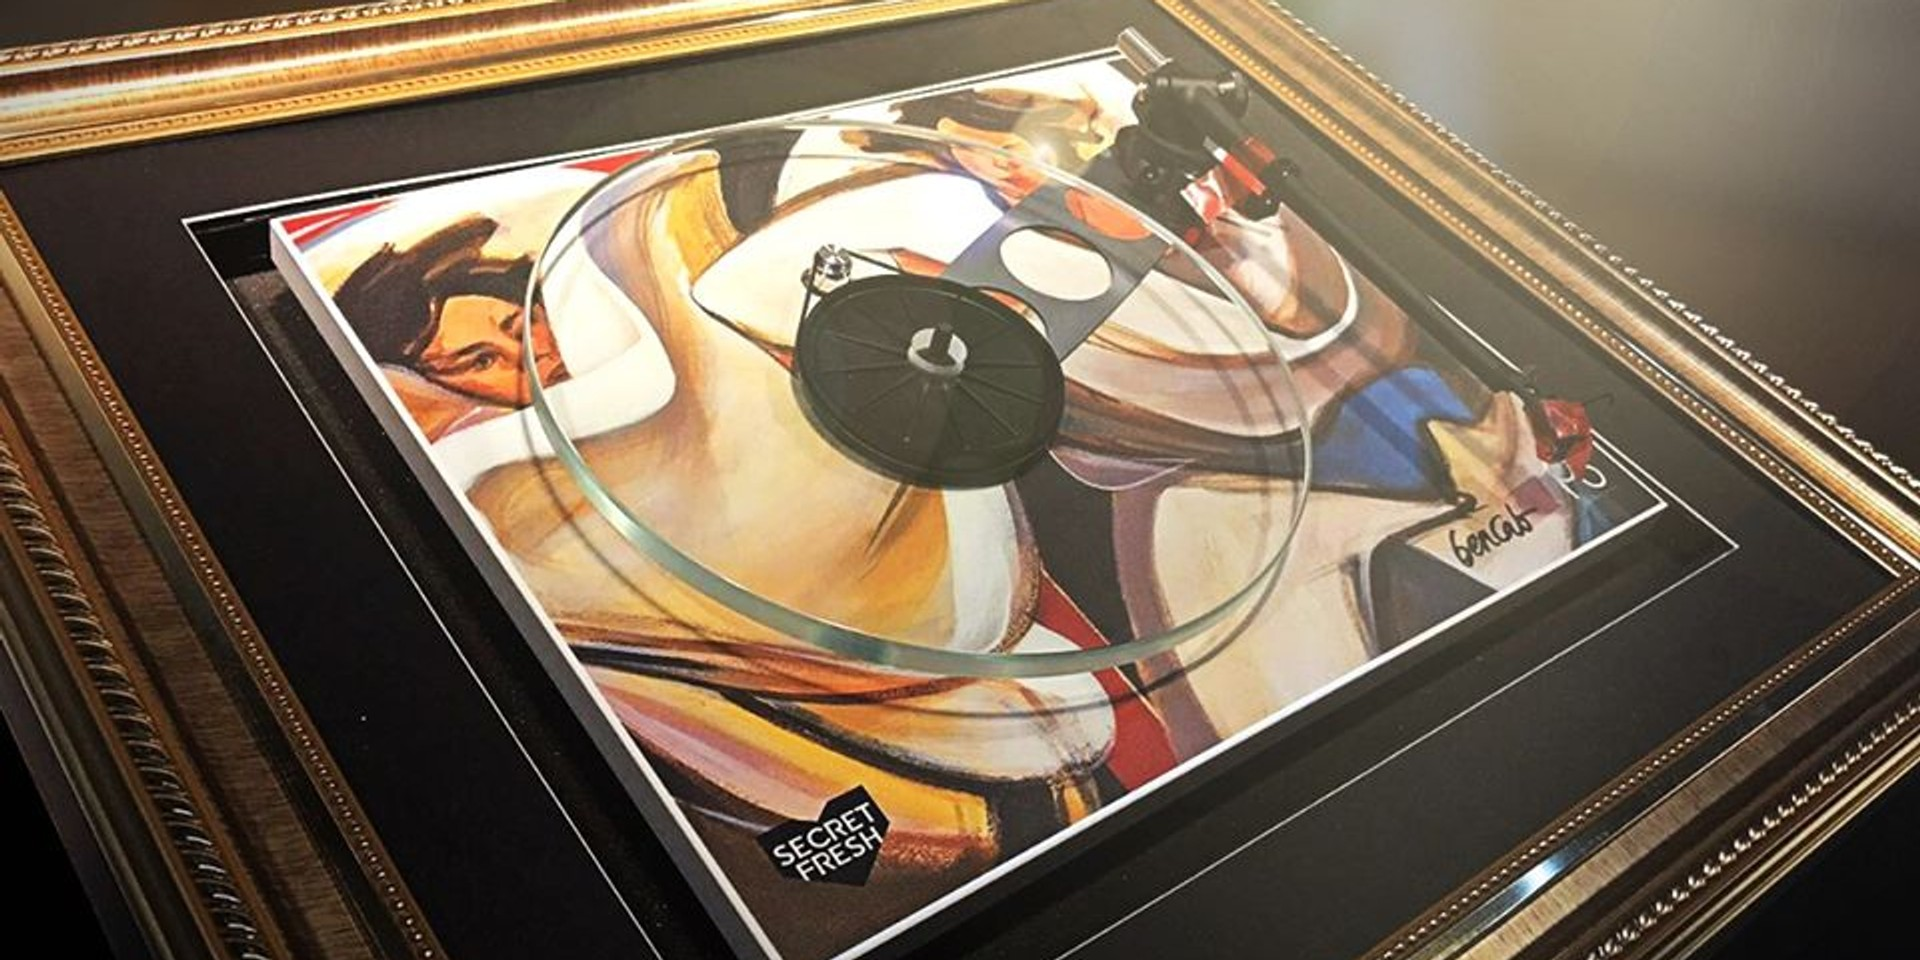 Rega collaborates with BenCab for limited edition turntable